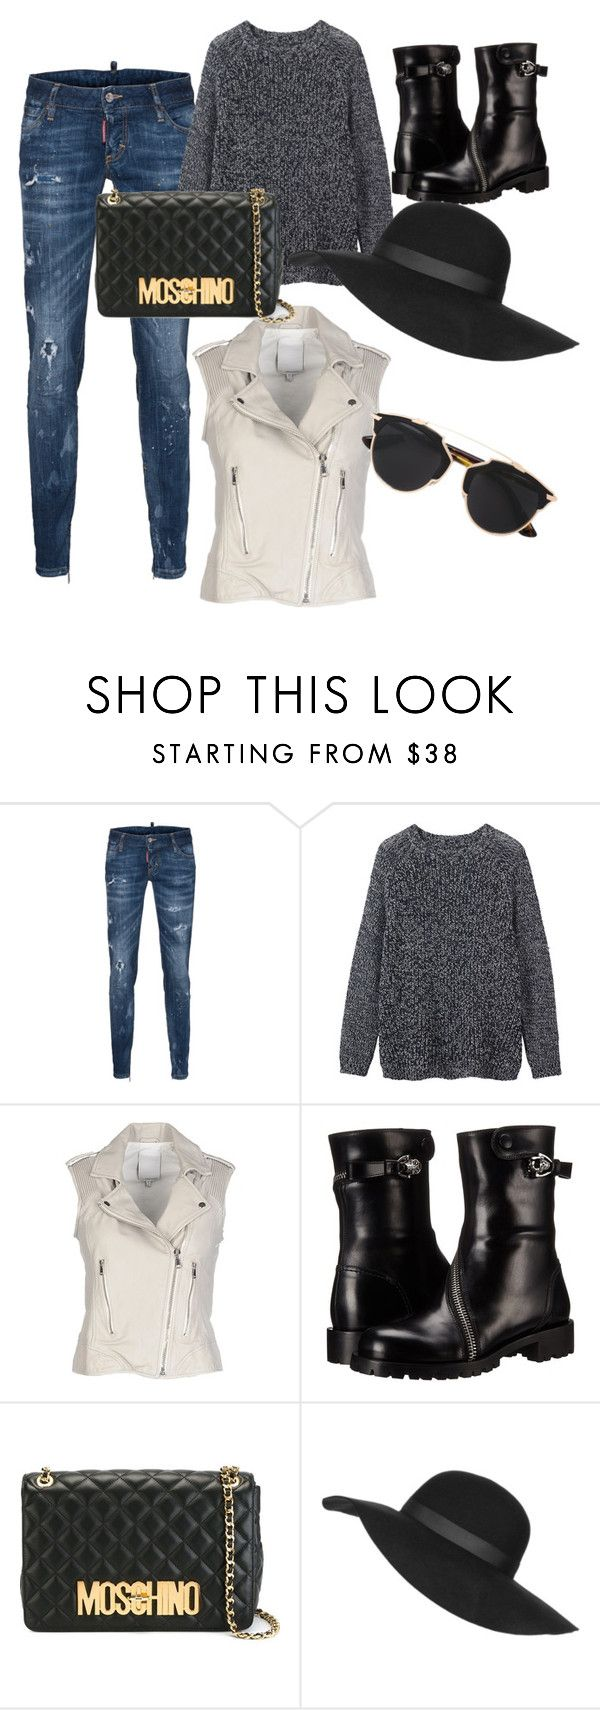 """""""Get the Look 1"""" by diacojocaru ❤ liked on Polyvore featuring Dsquared2, Toast, Brogden, Alexander McQueen, Moschino, Topshop and Christian Dior"""